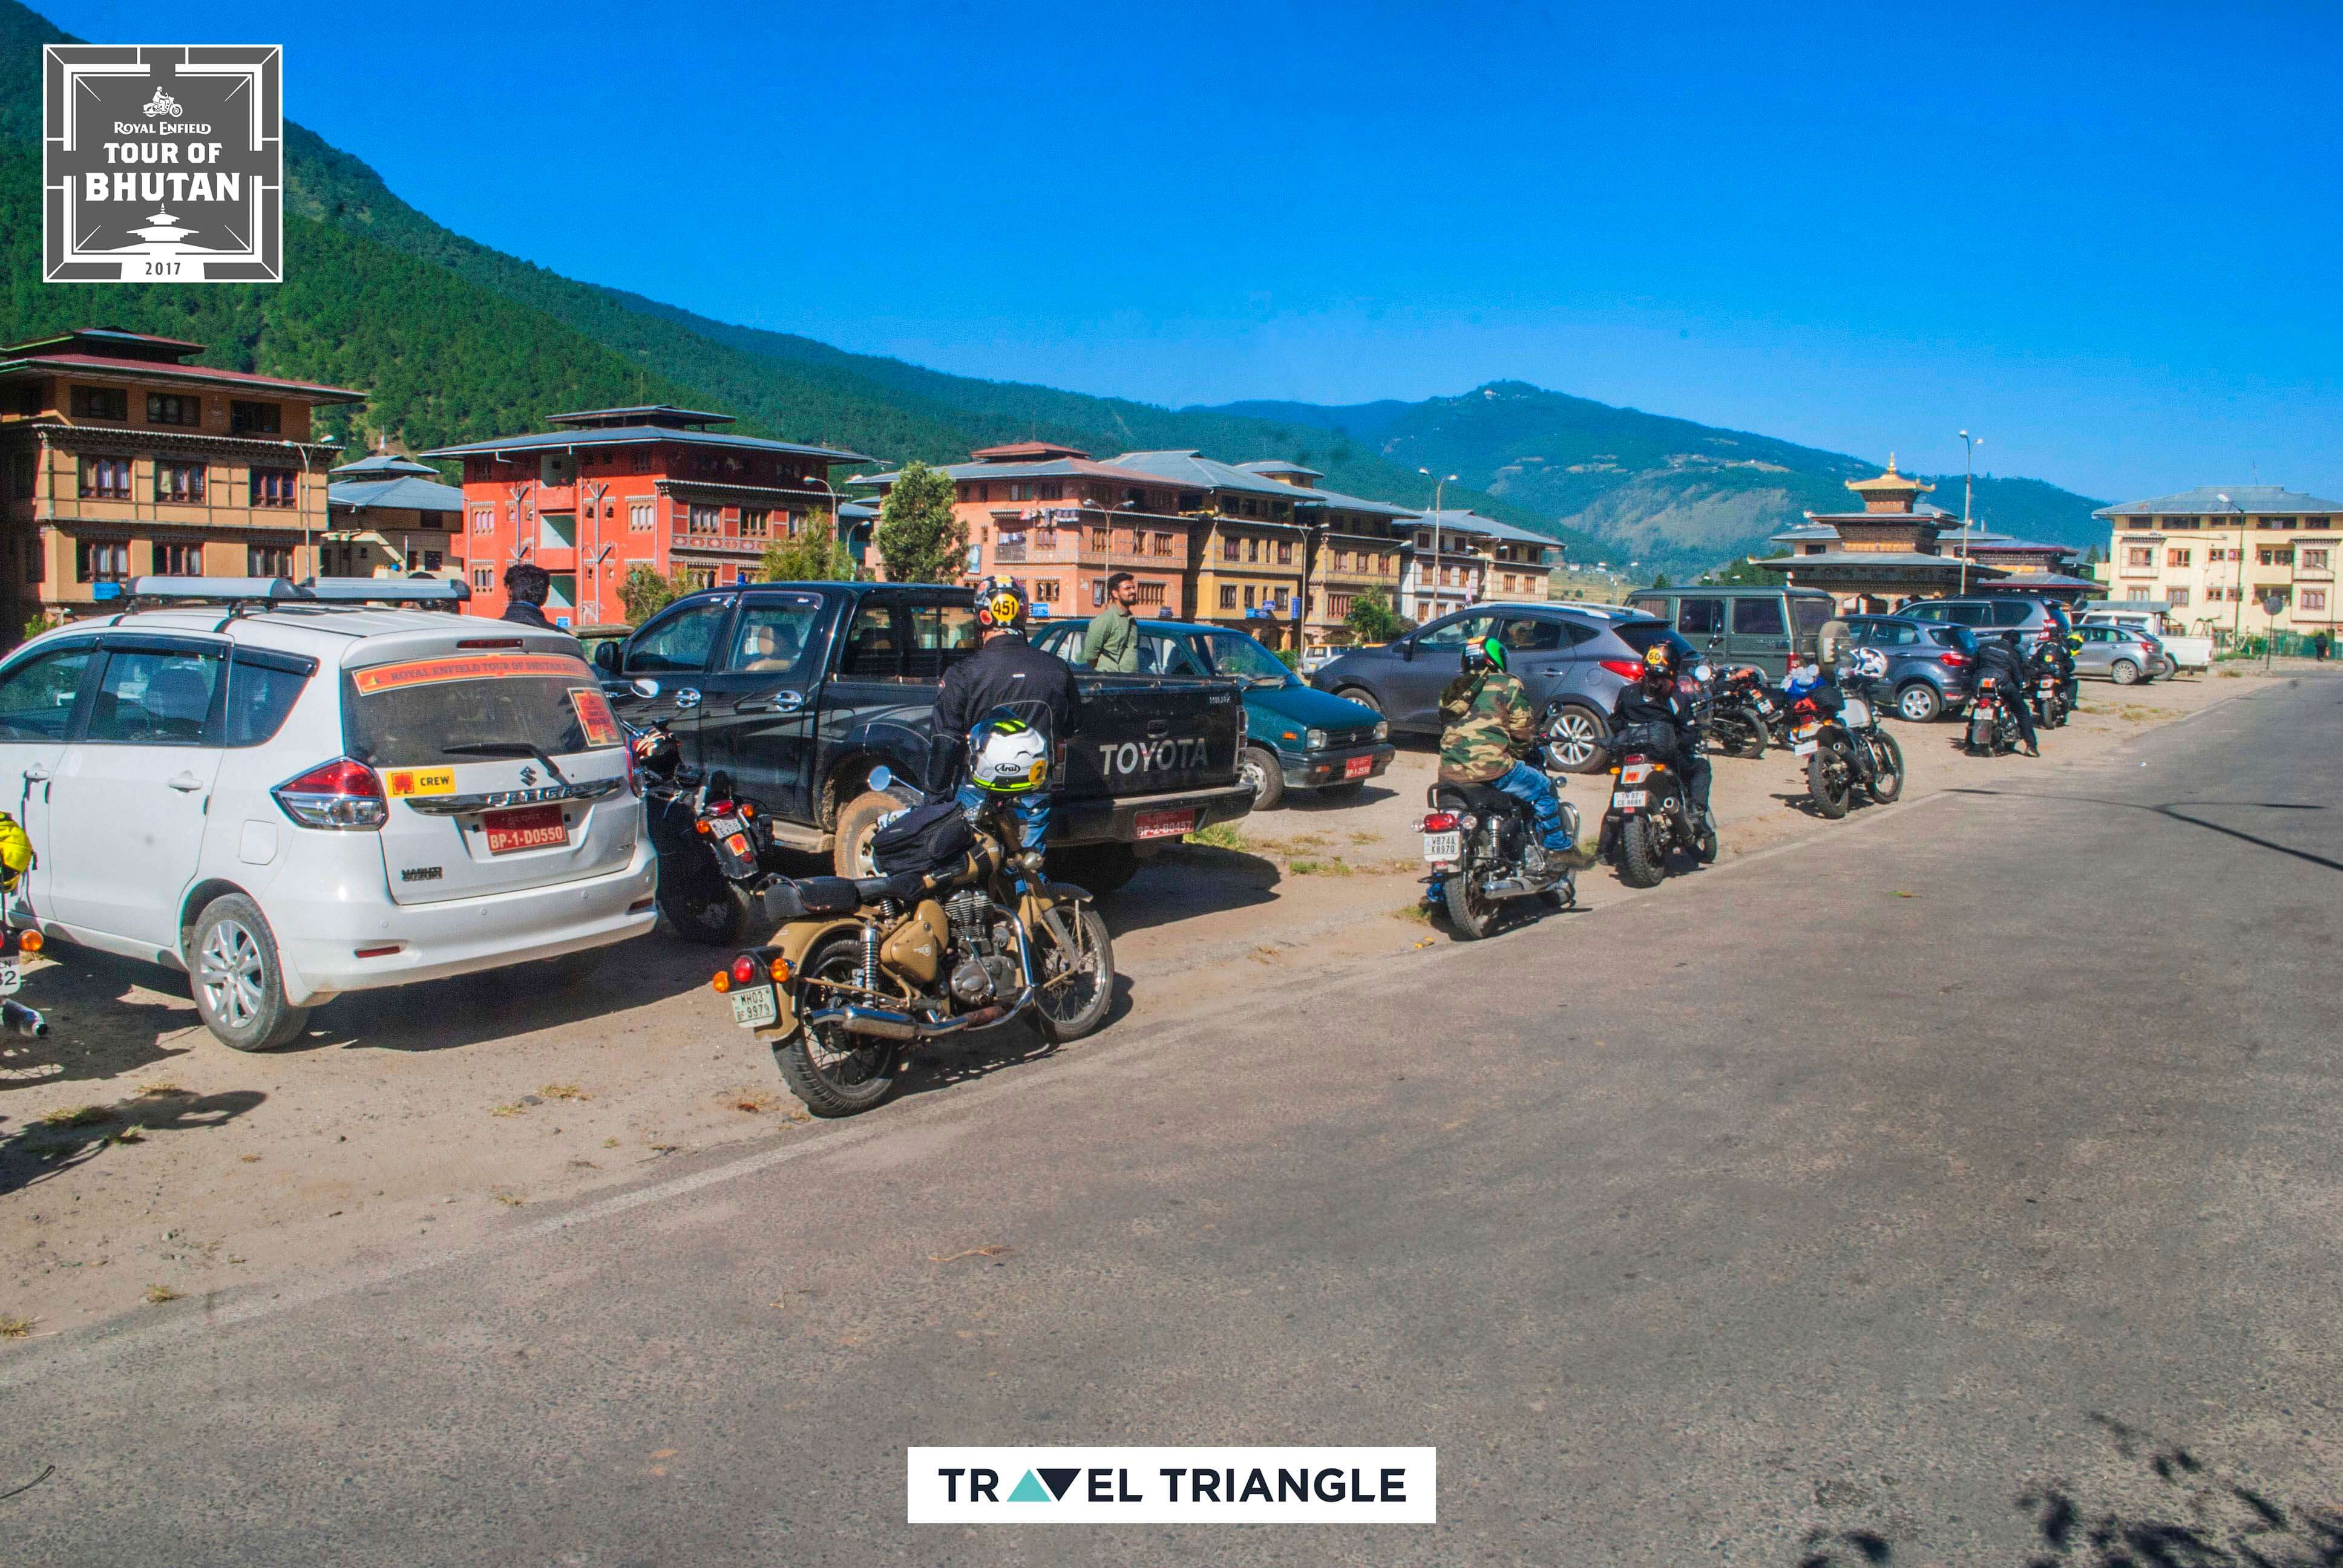 Punakha to Phobjikha: riding through the town of punakha